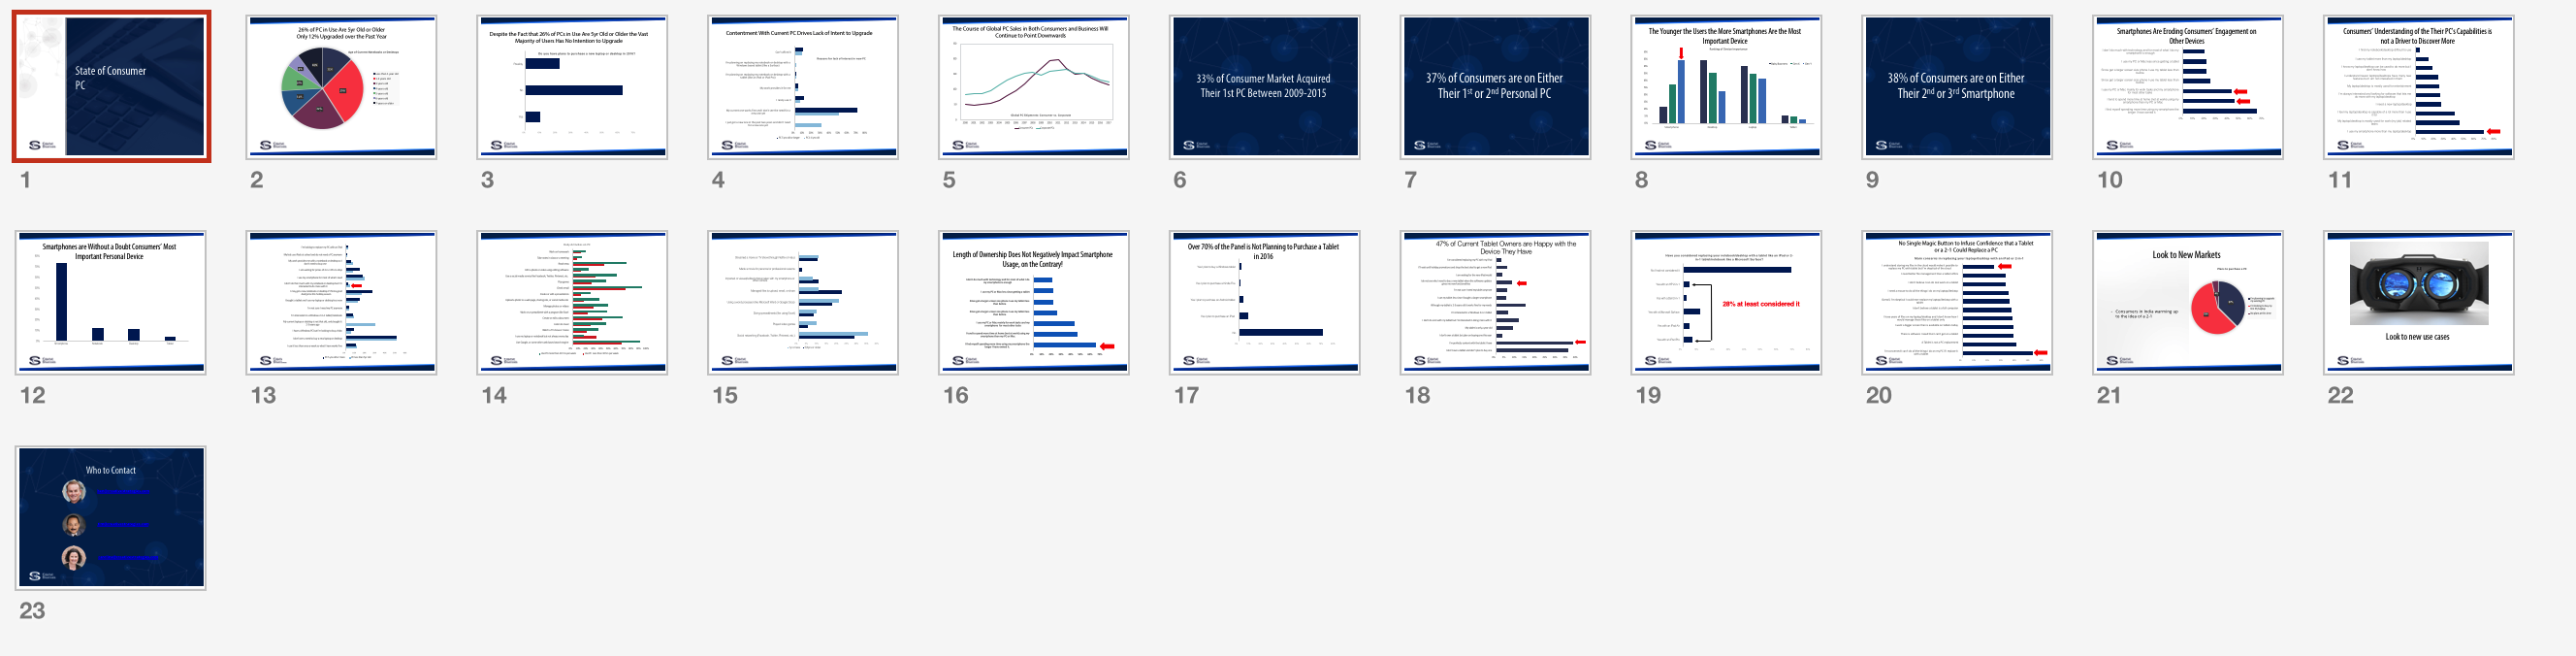 Four Fresh Presentations, Four Key Charts